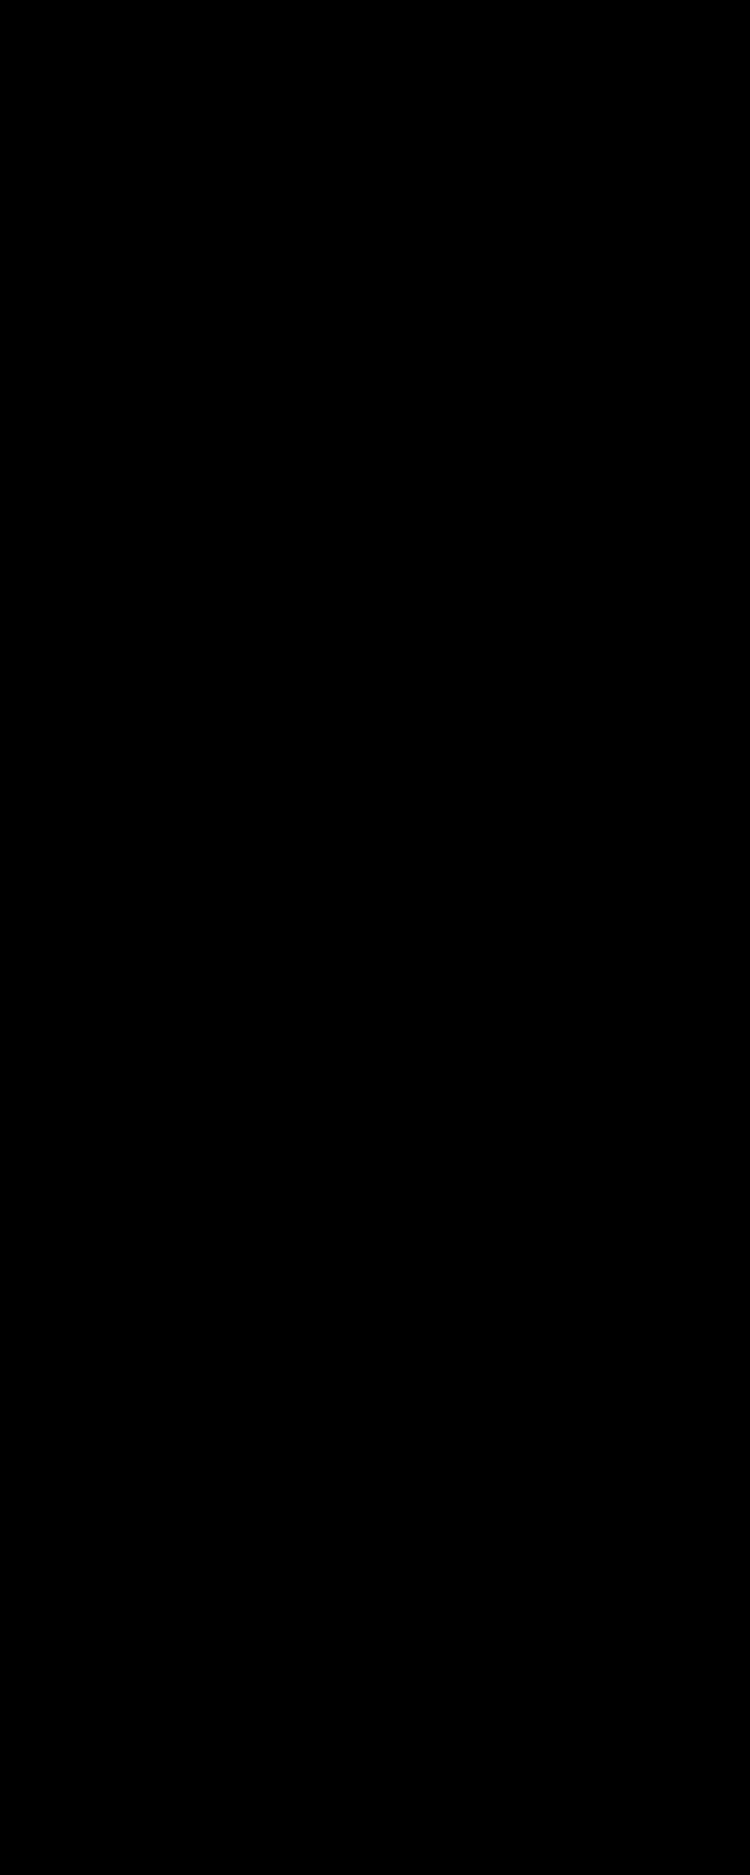 The 5 Steps that every first time home buyer must start with (including time frames).